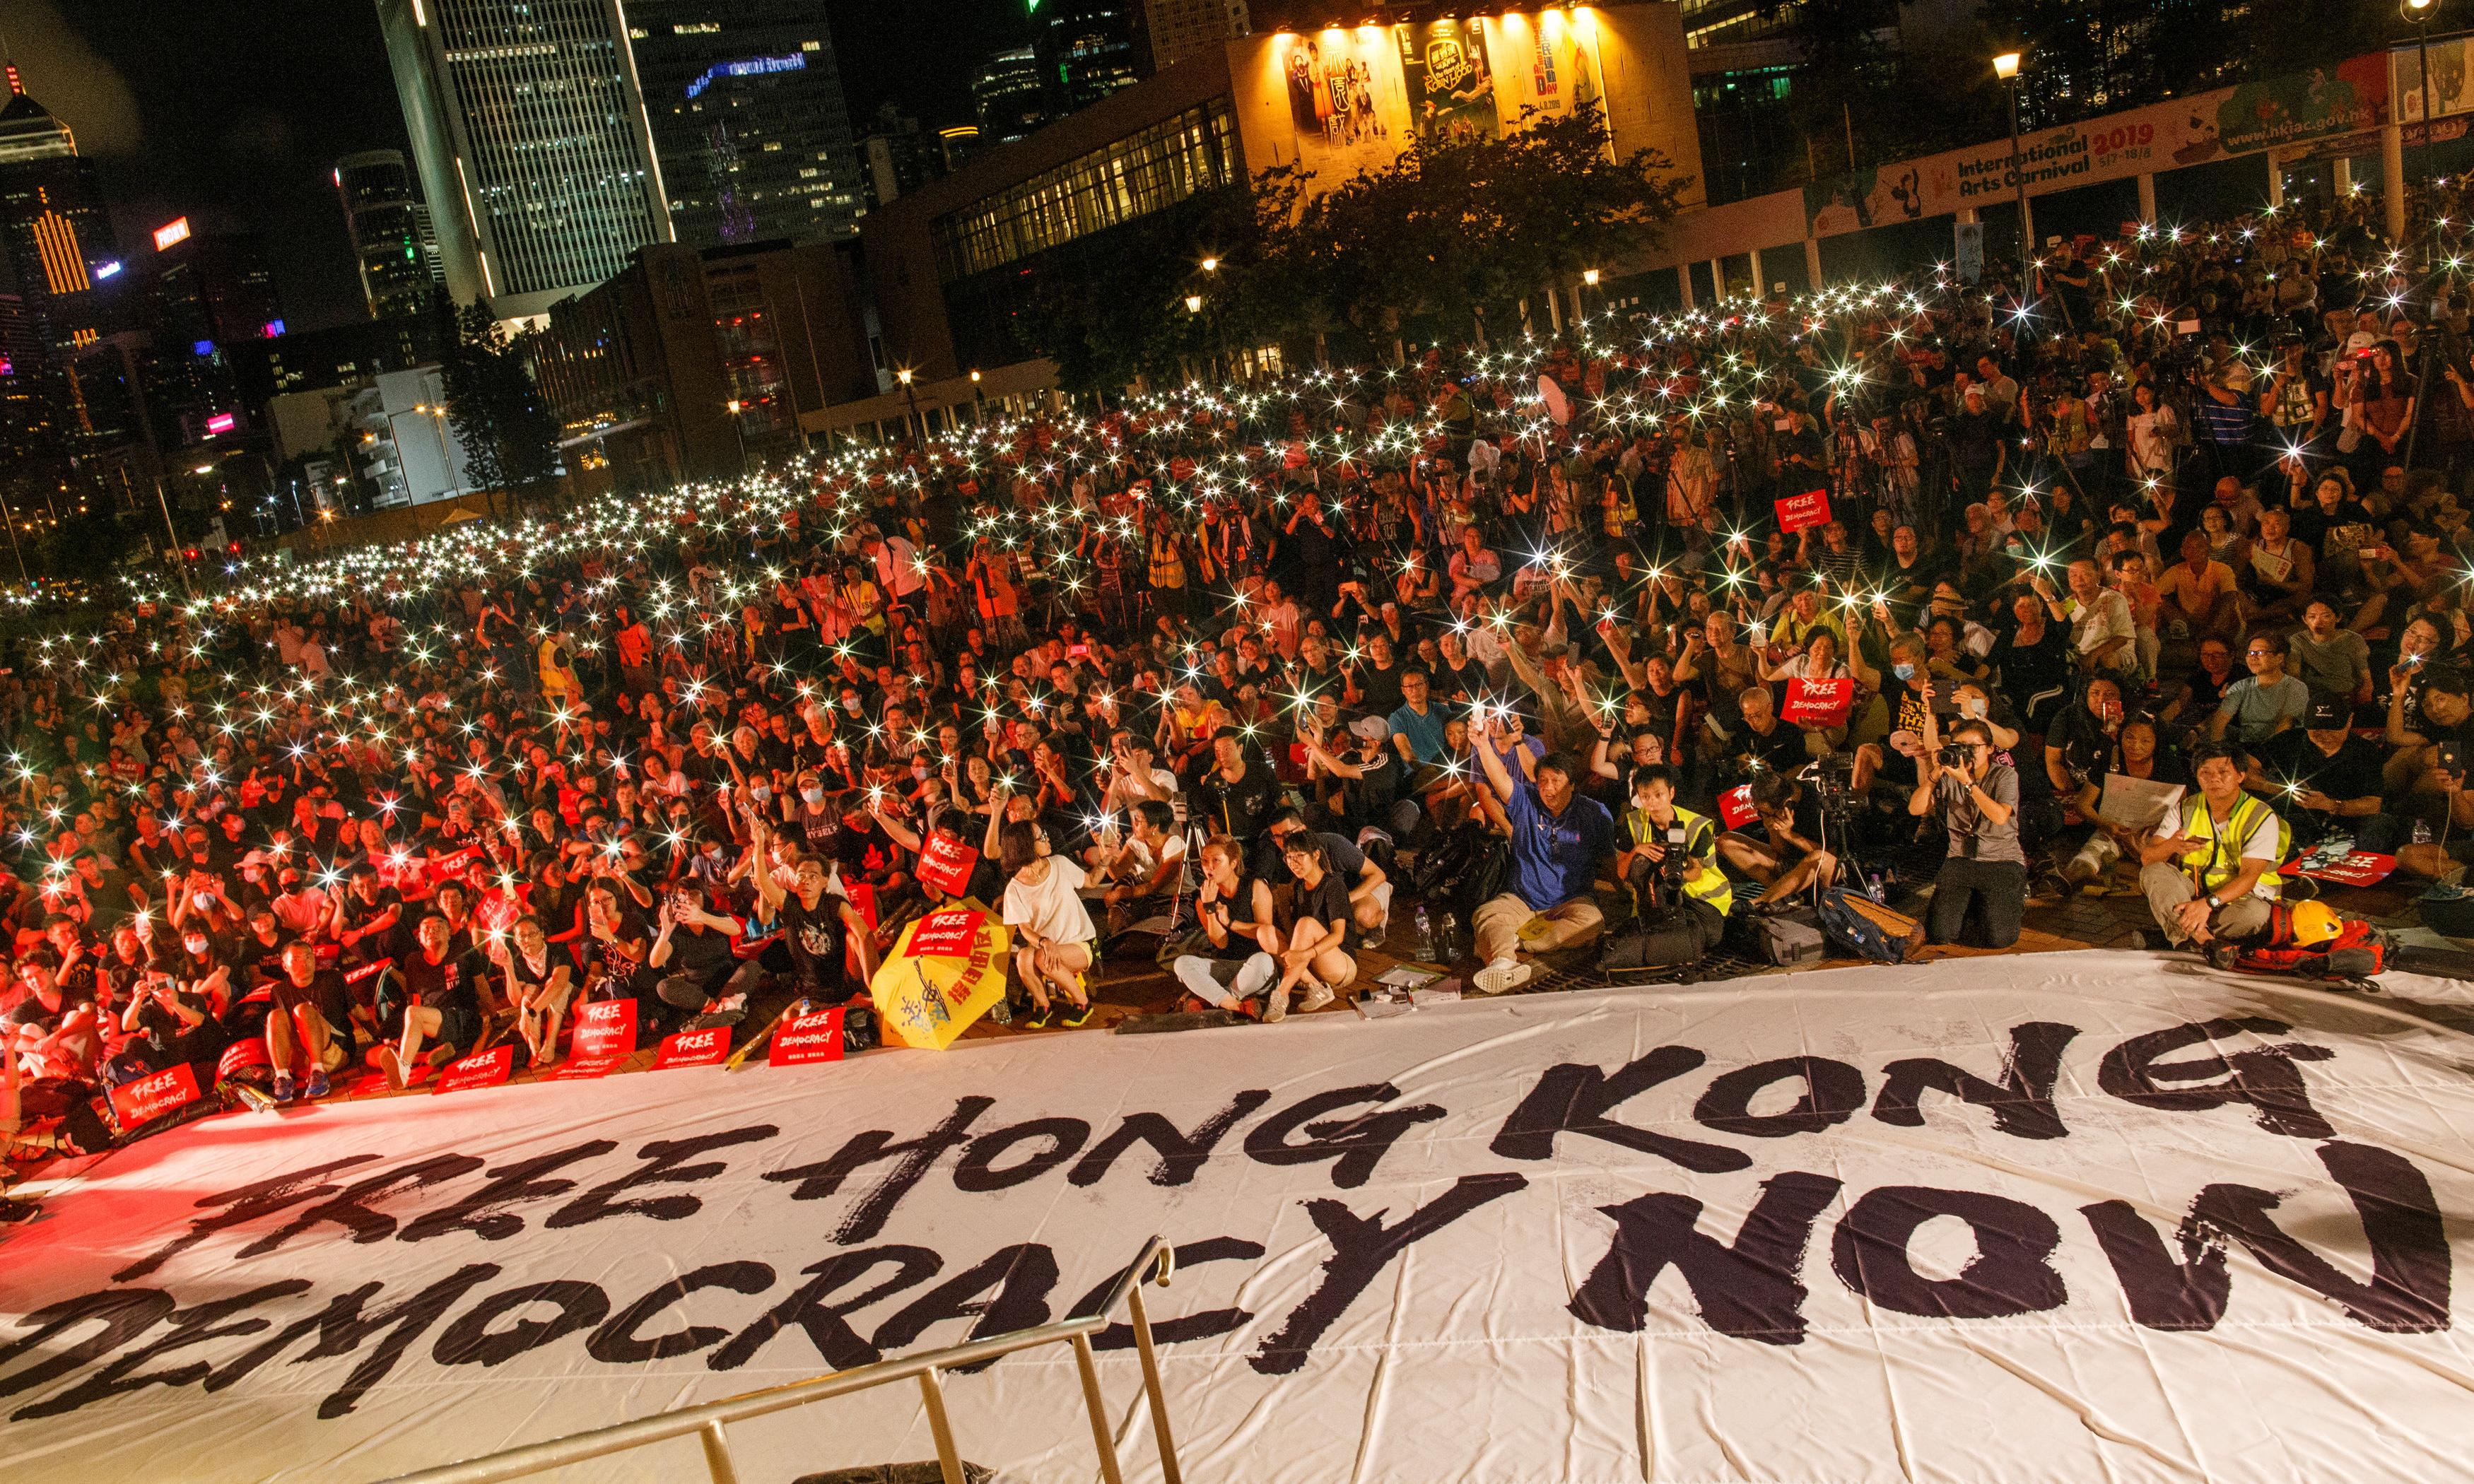 Hong Kong protesters seek support from G20 leaders over extradition law